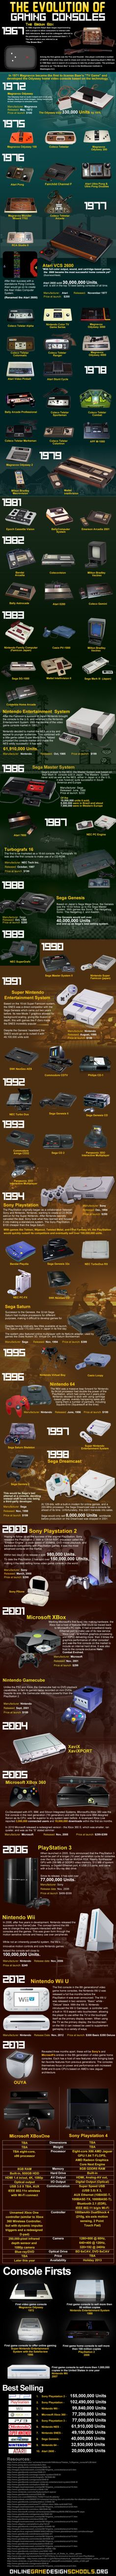 The Evolution of Gaming Consoles: From 1967 to 2013